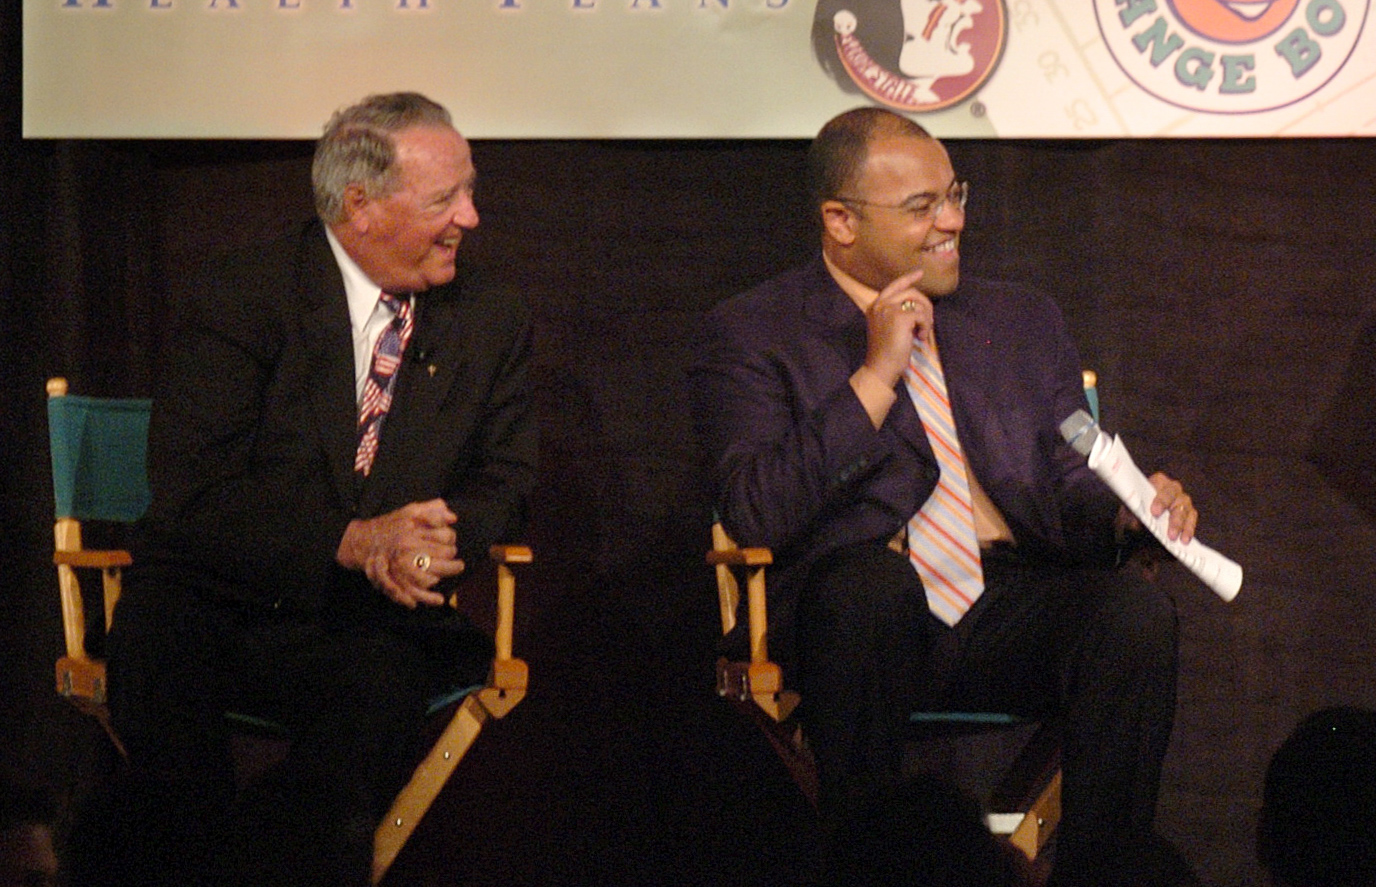 Former+Florida+State+head+coach+Bobby+Bowden+and+sportscaster+Mike+Tirico+%28right%29+joke+at+the+Orange+Bowl+Coaches+Luncheon+in+2006.+Tirico+will+host+the+Illinois+Hall+of+Fame+Gala.